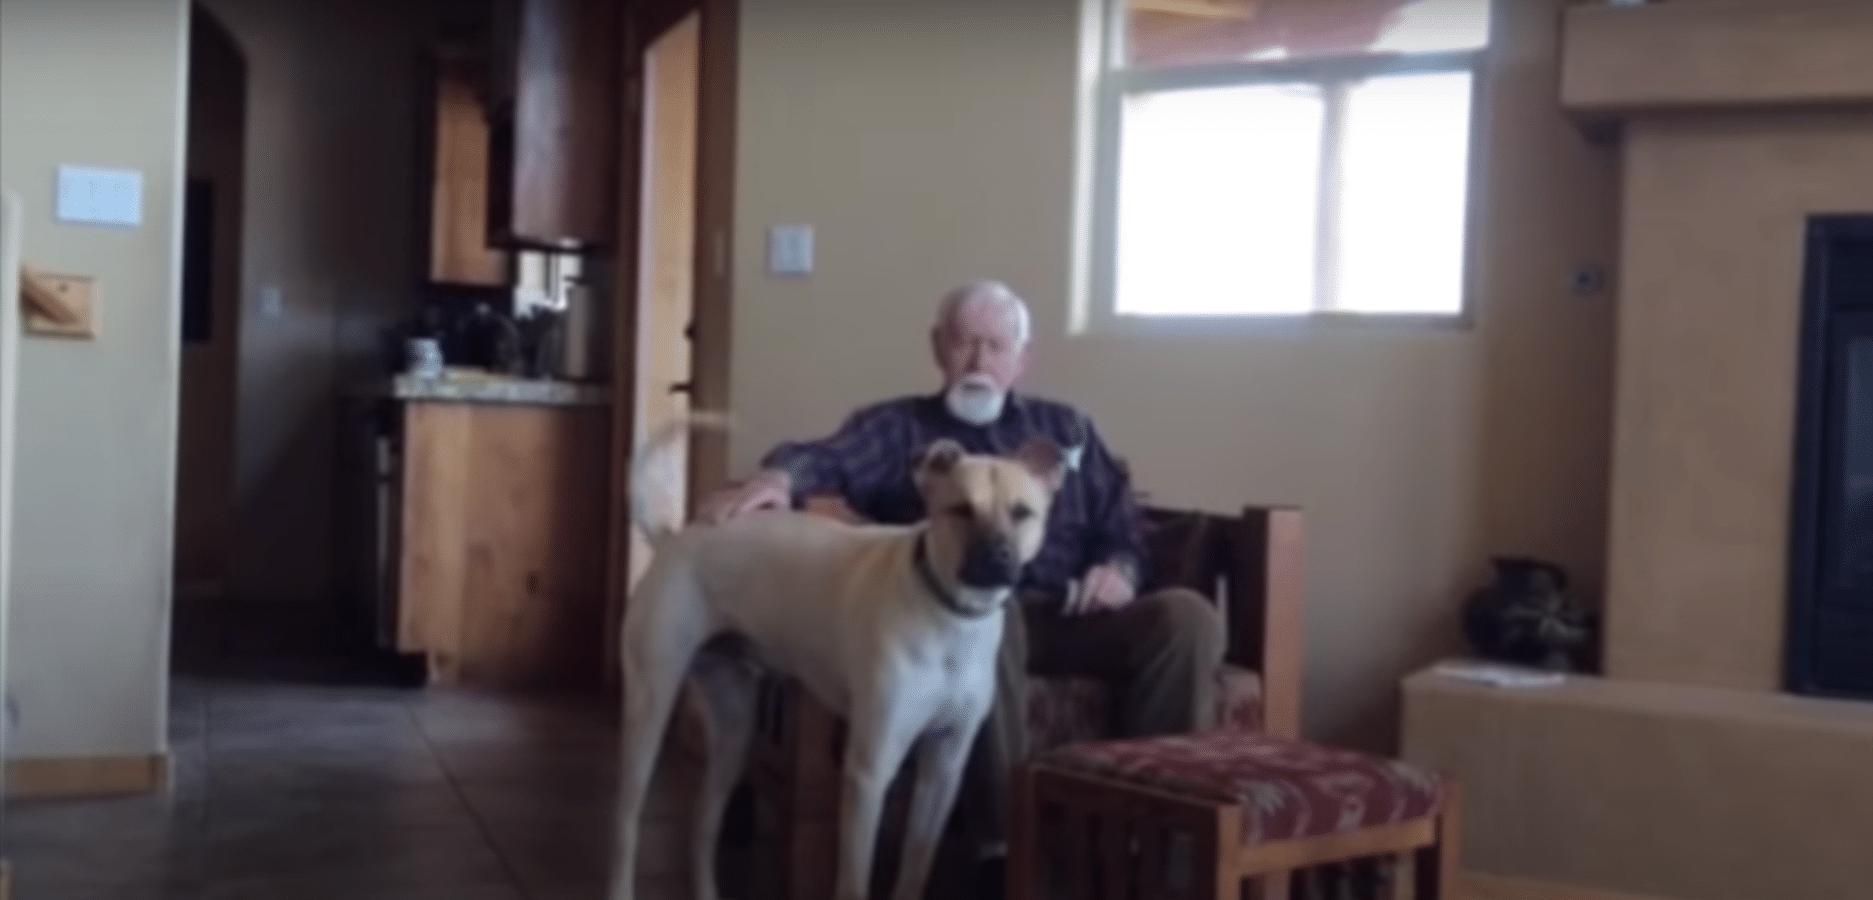 Grandma With Alzheimers Has Sweetest Reaction To Dog